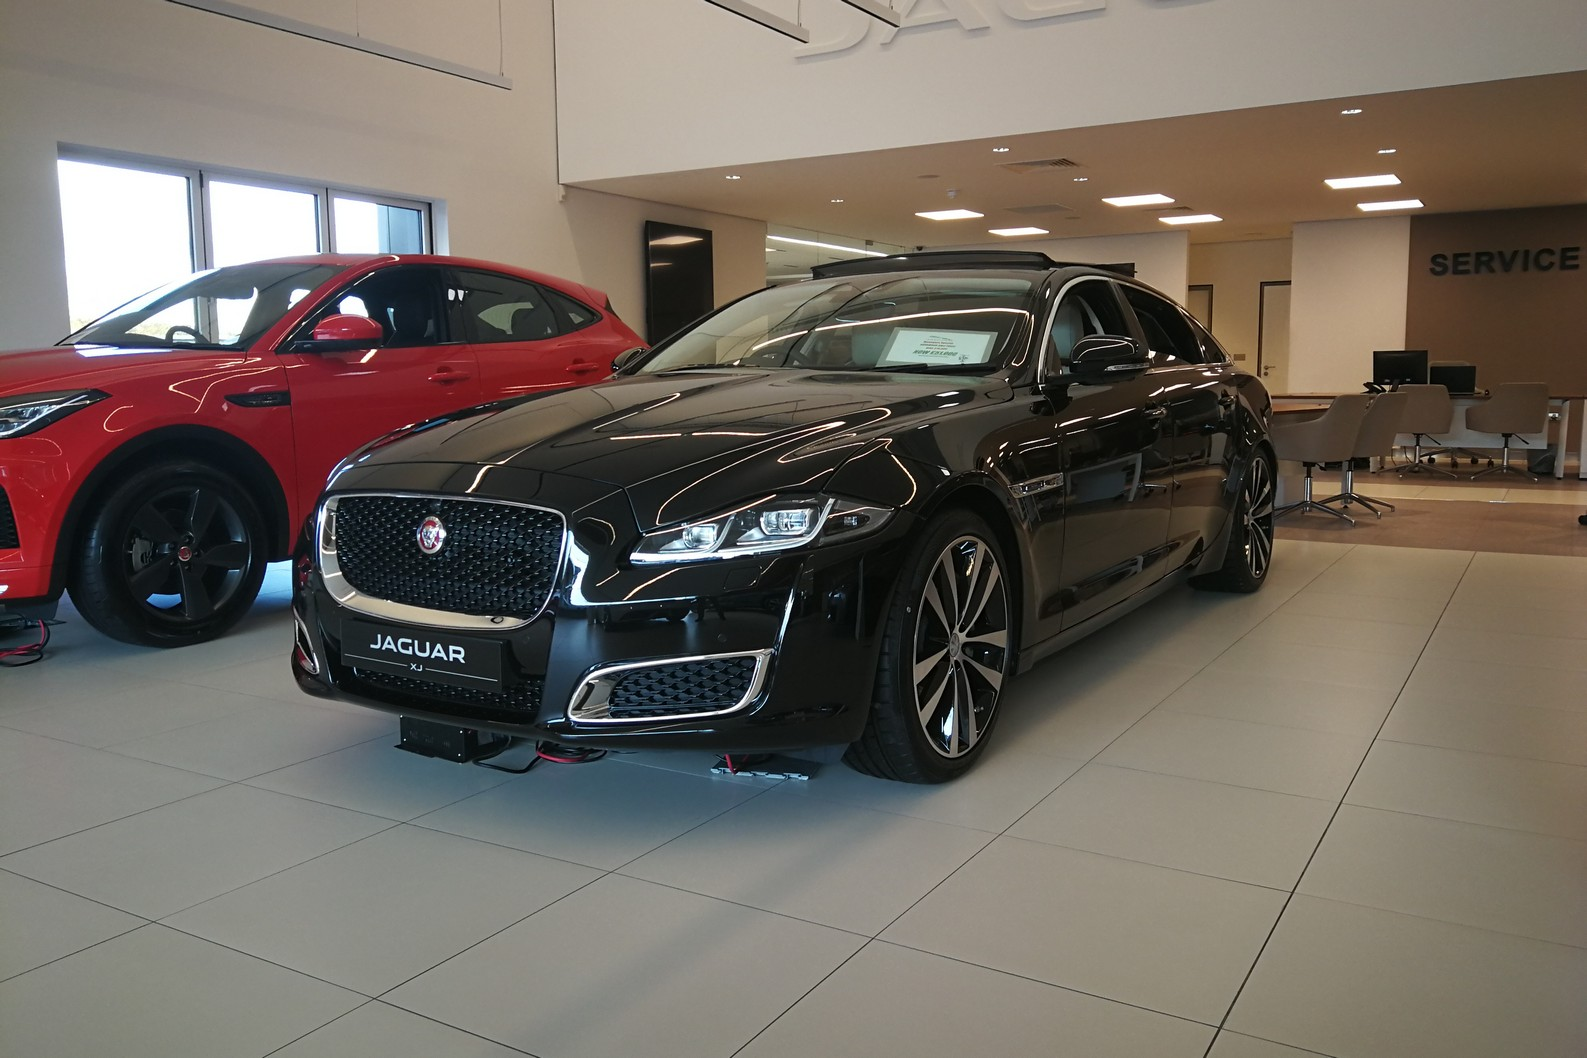 Jaguar XJ 3.0d V6 XJ50 LWB - Delivery Mileage - Surround Camera - Heated and cooled S image 3